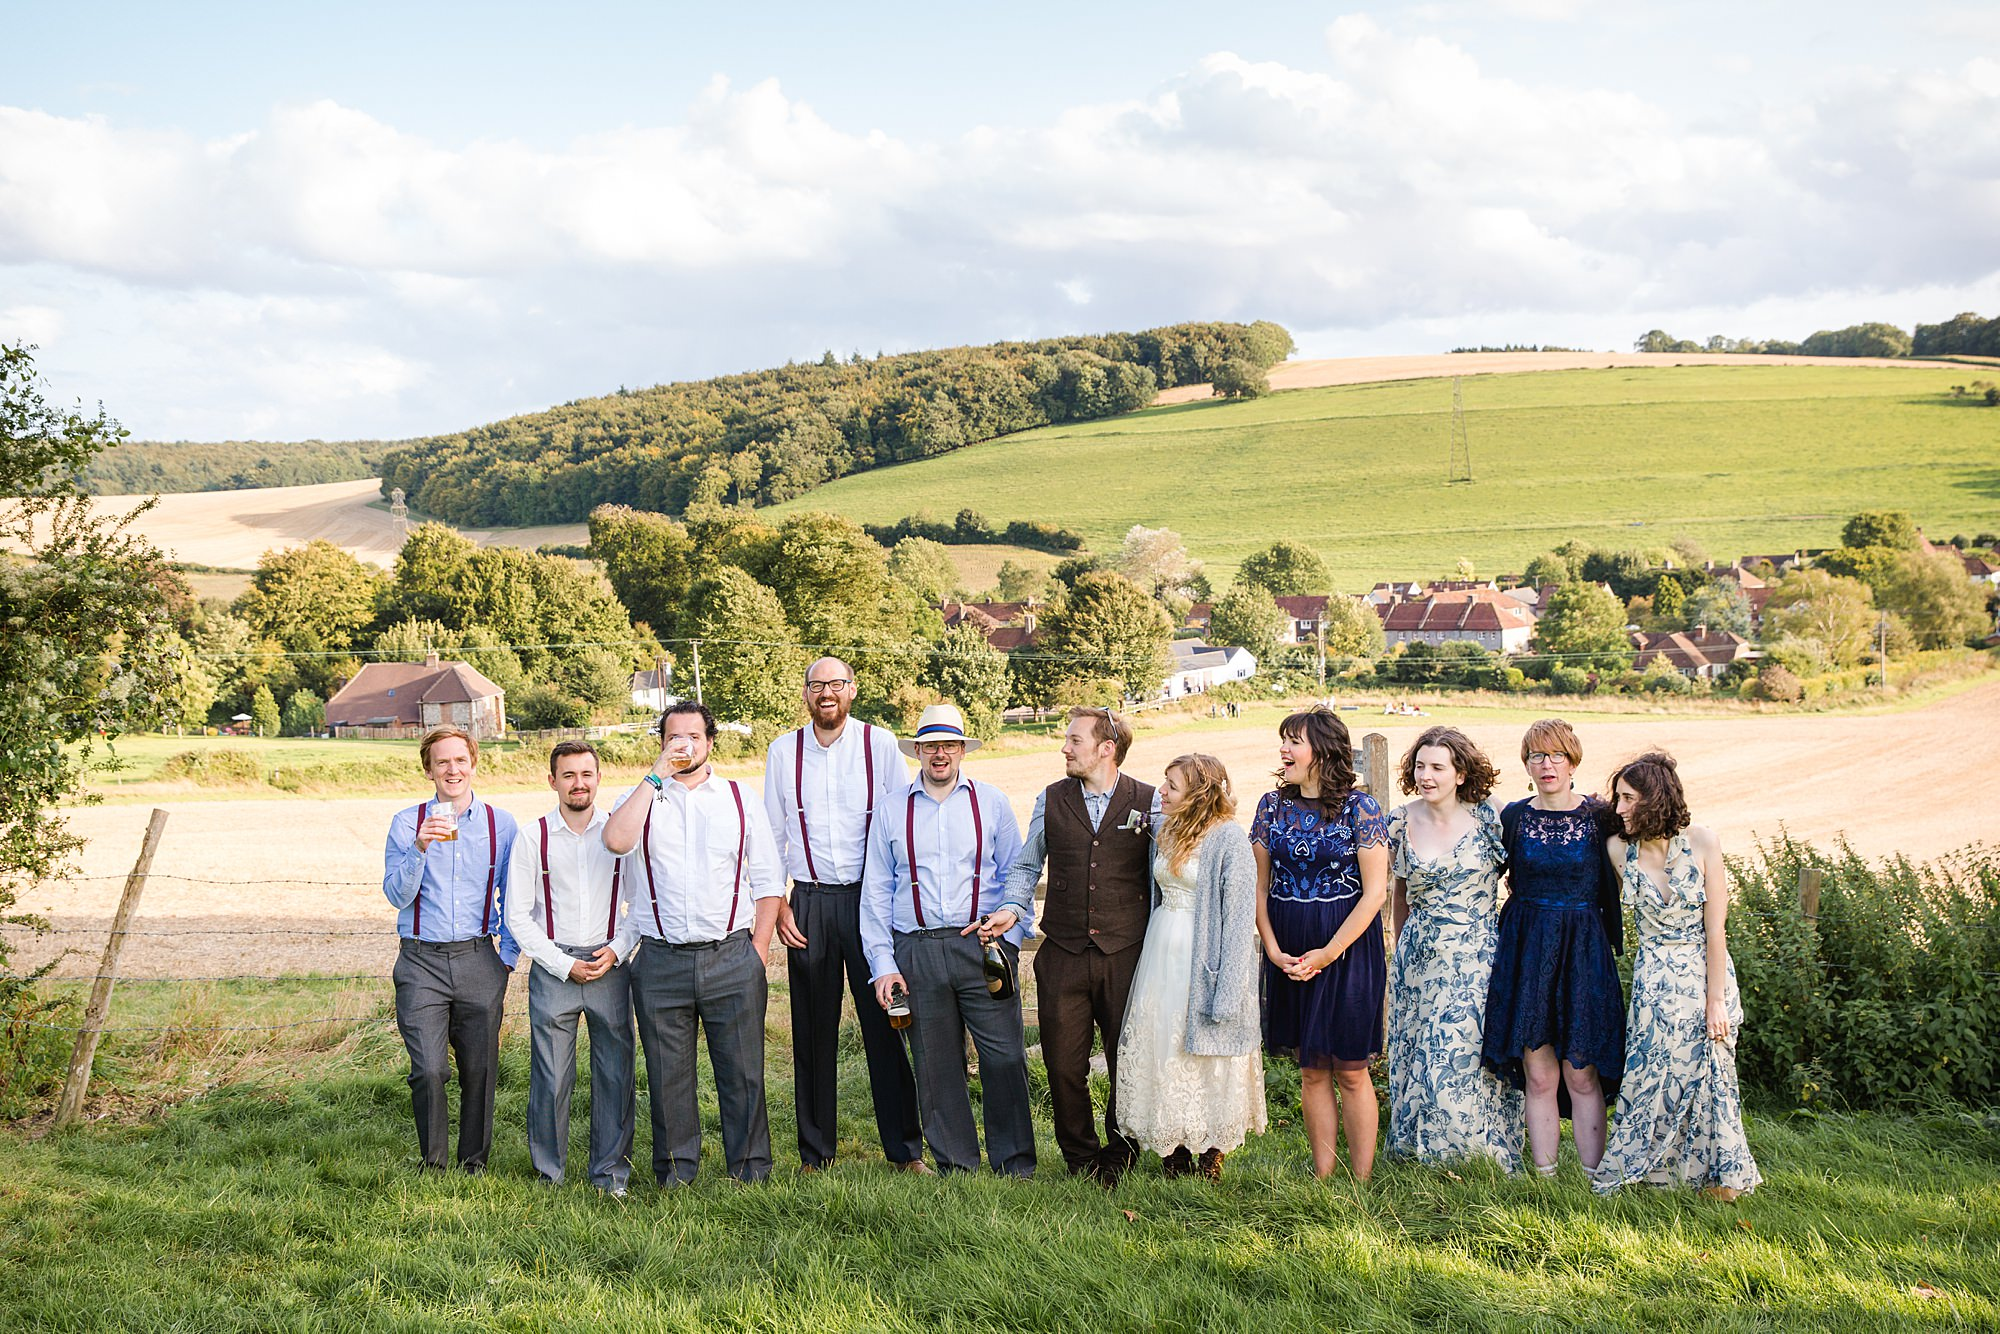 Fun village hall wedding fun portrait of bride and groom's party together